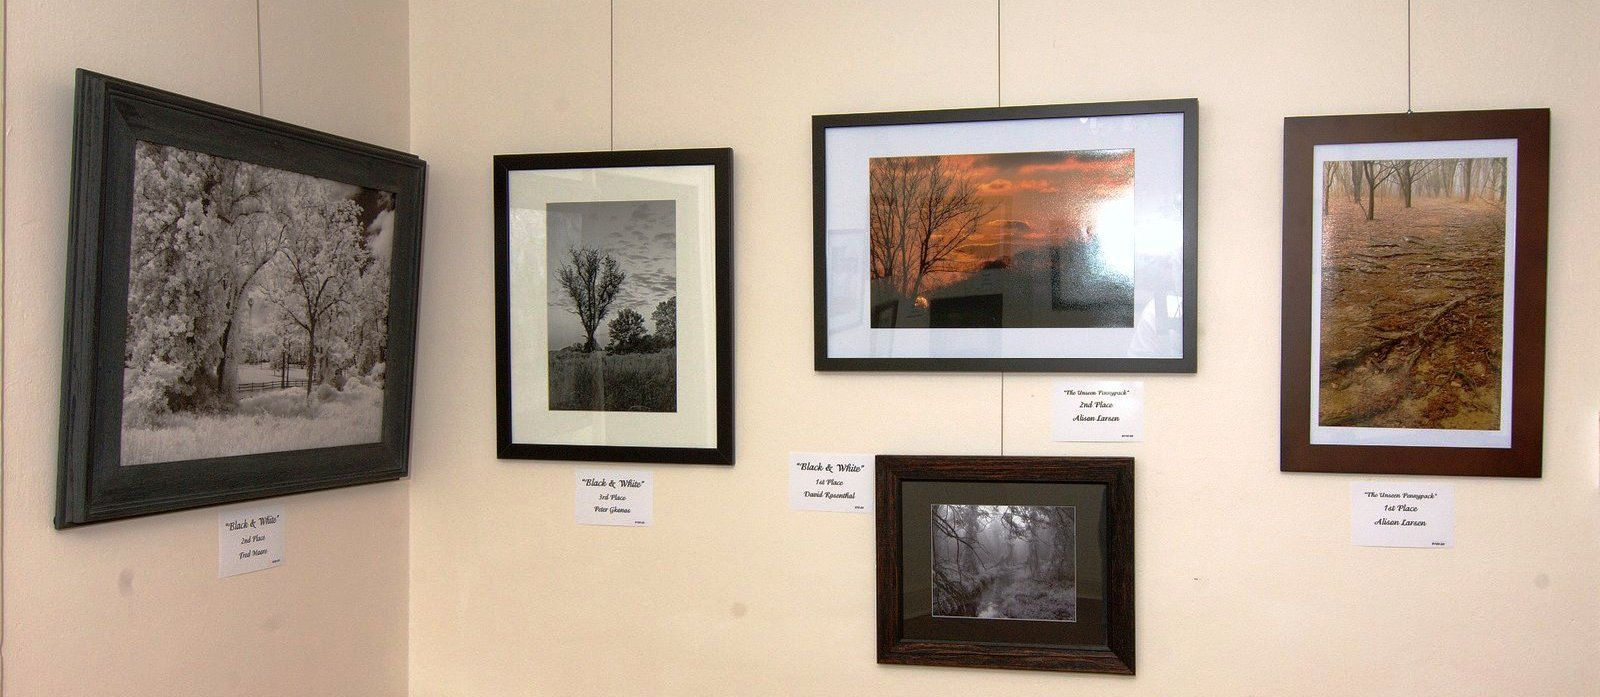 Pennypack Photography guild exhibit at Orchard Artworks